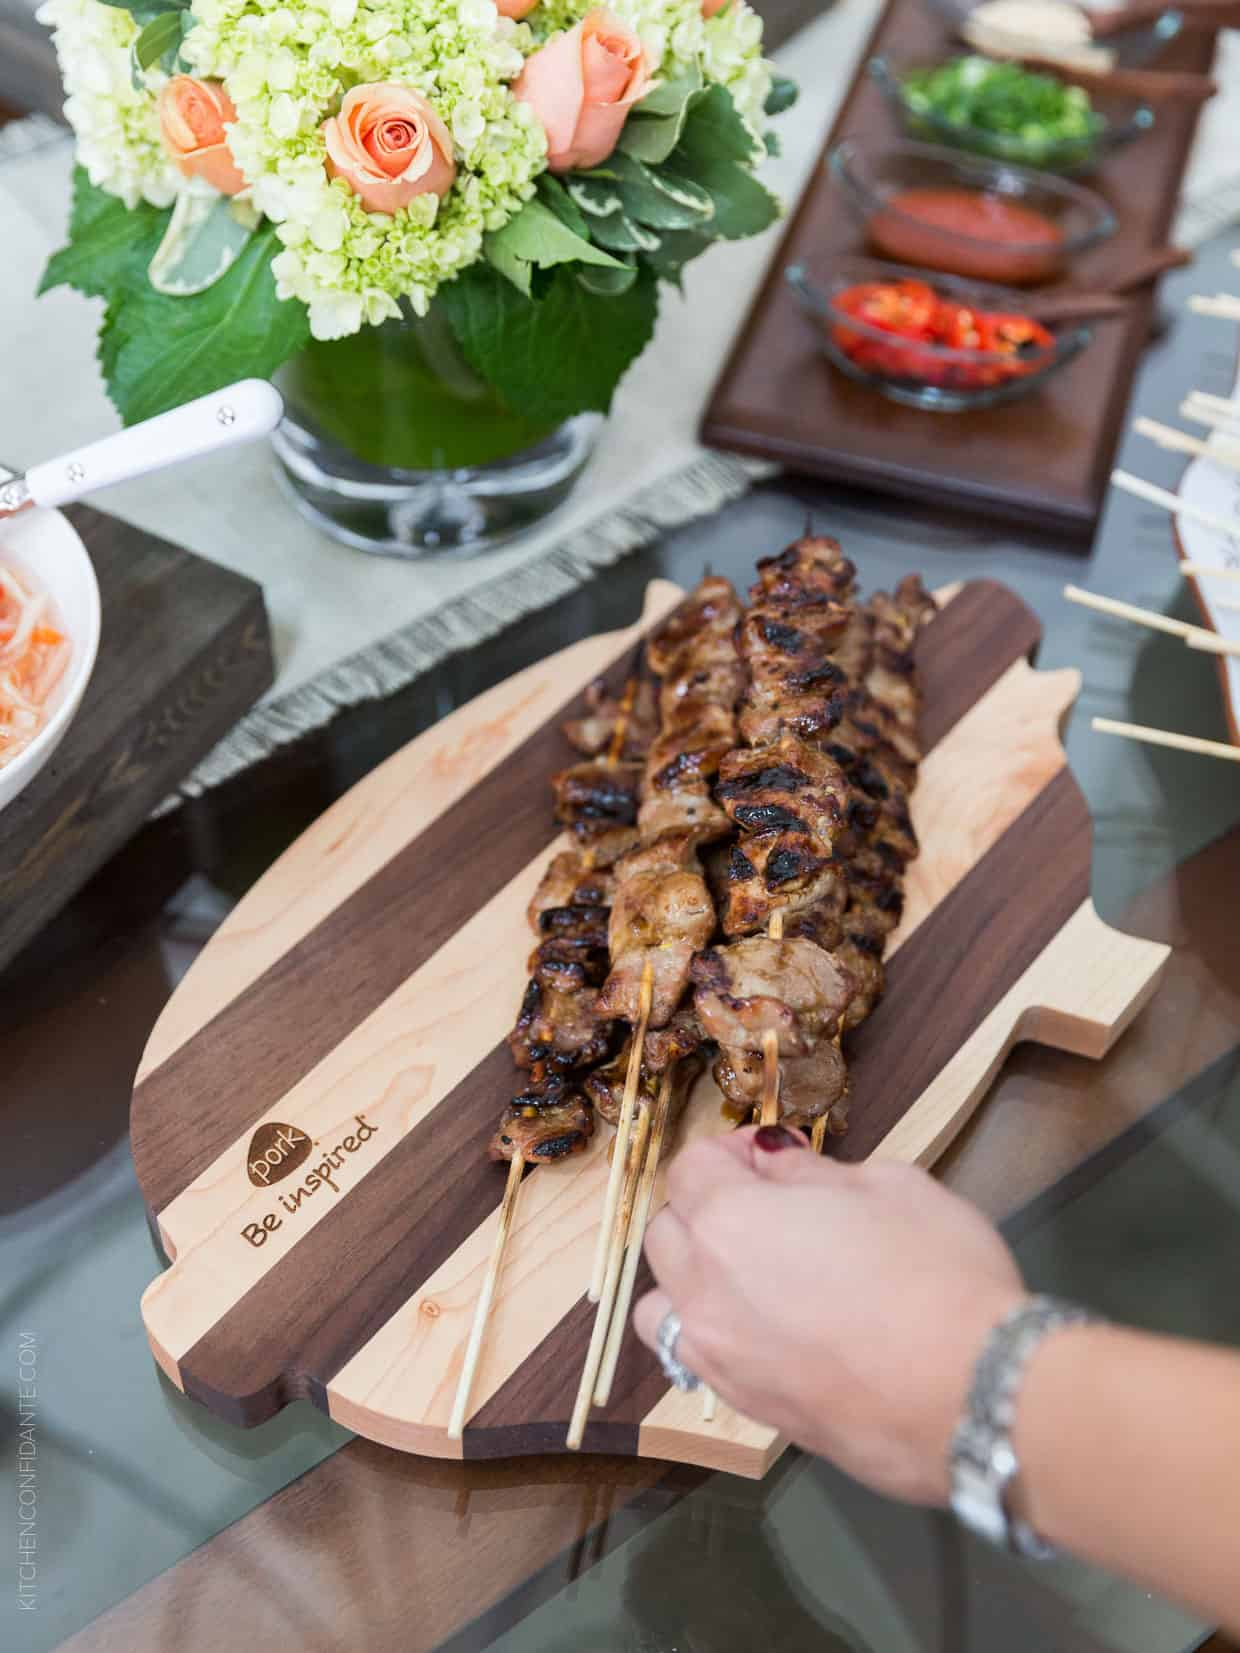 Filipino Pork BBQ skewers disappear like magic at any gathering. Try it for game day!